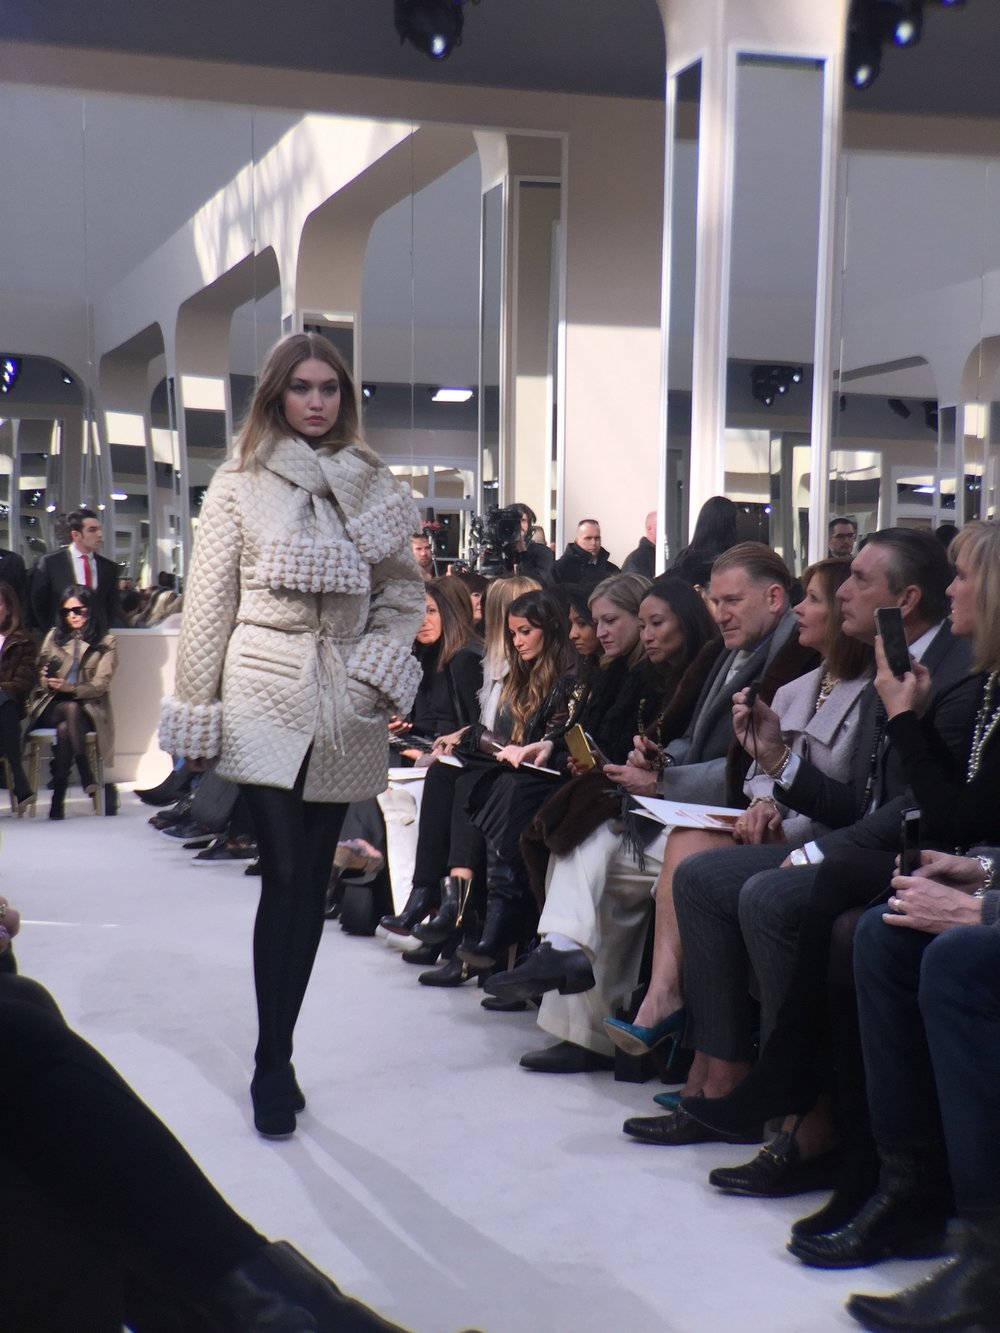 Gigi Hadid in a quilted beige coat and black tights